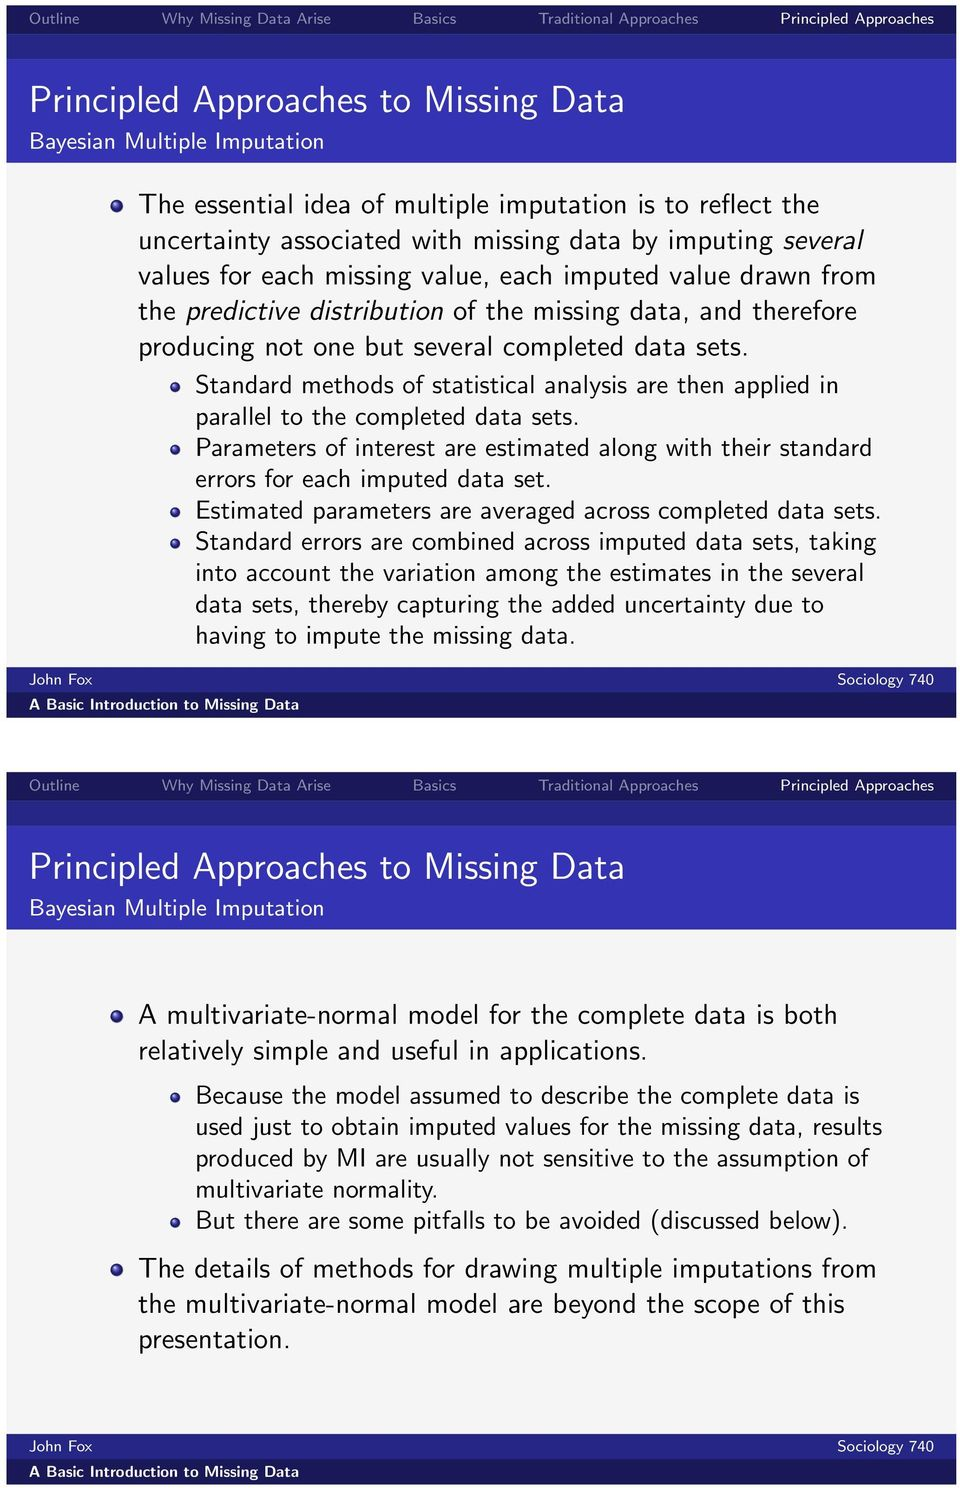 Standard methods of statistical analysis are then applied in parallel to the completed data sets. Parameters of interest are estimated along with their standard errors for each imputed data set.